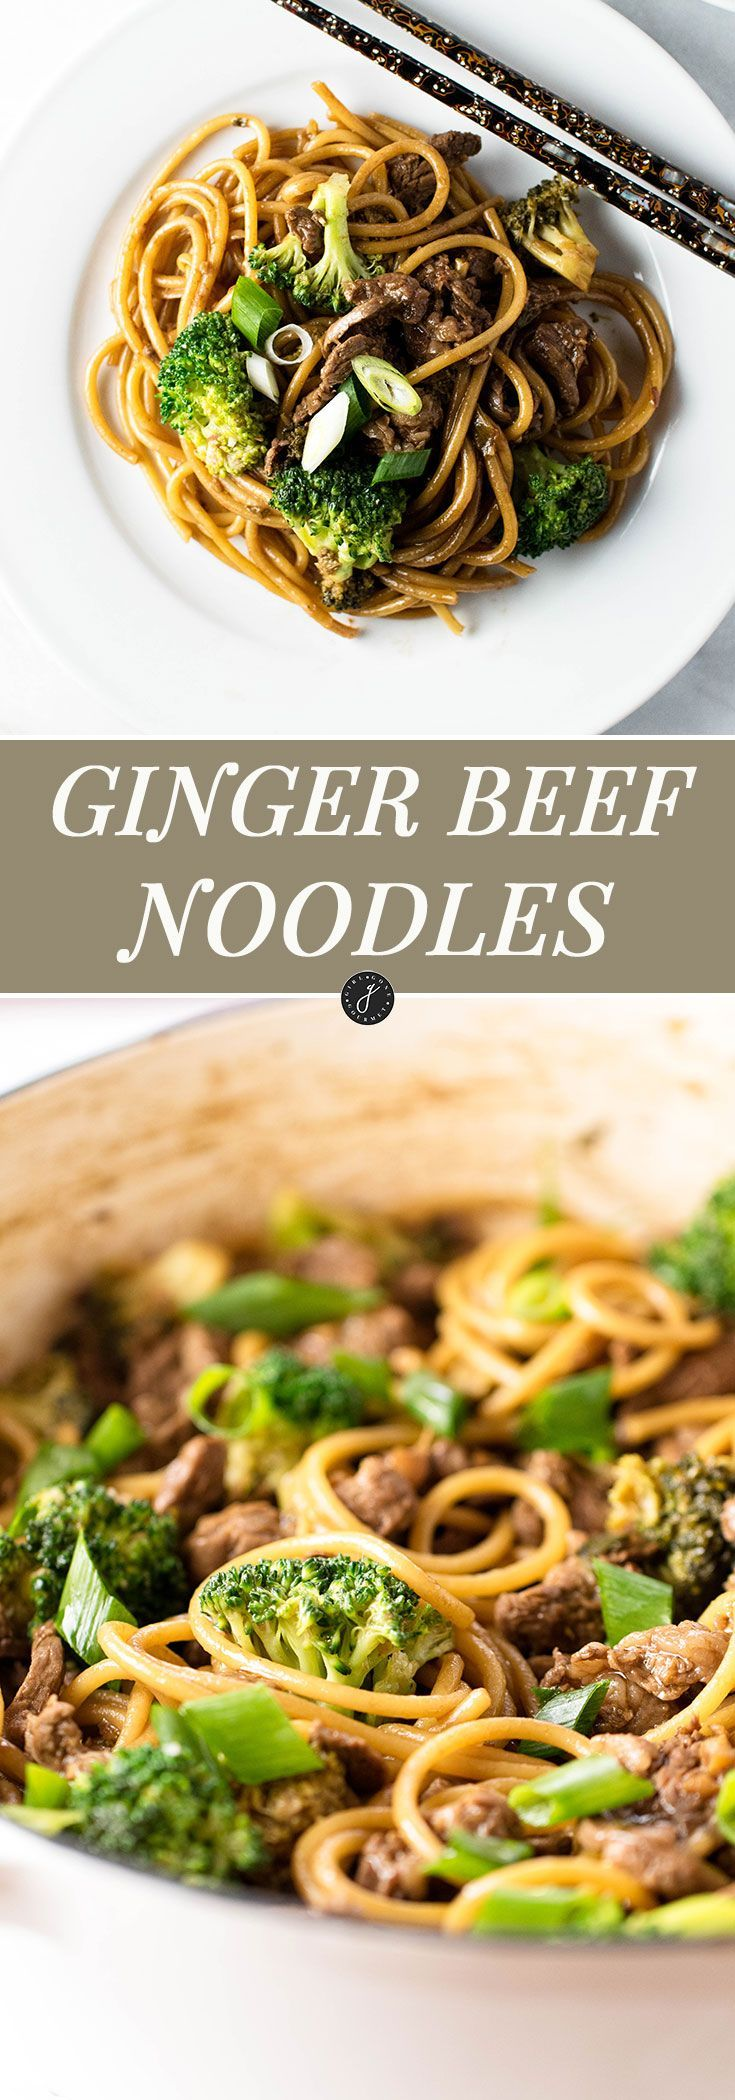 30-Minutes is all you need for these ginger beef noodles | girlgonegourmet.com via @april7116